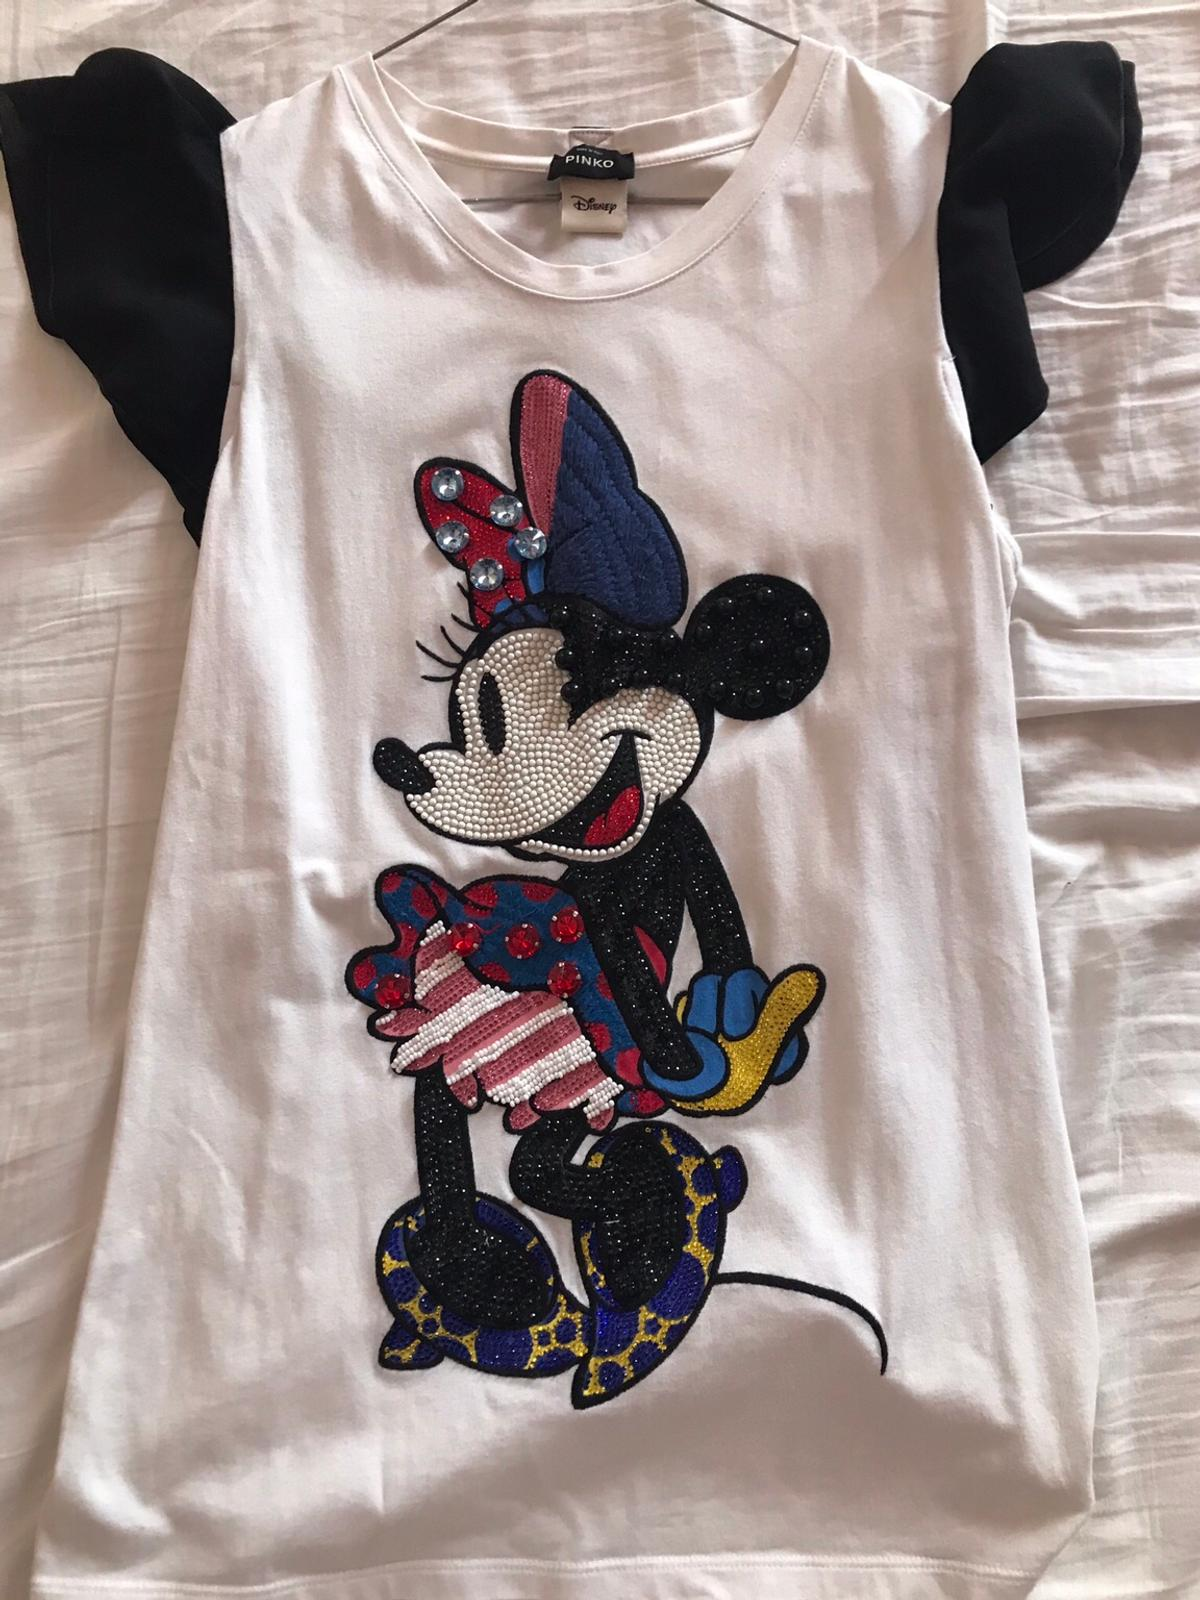 shopping footwear best choice Maglia Pinko taglia S Disney